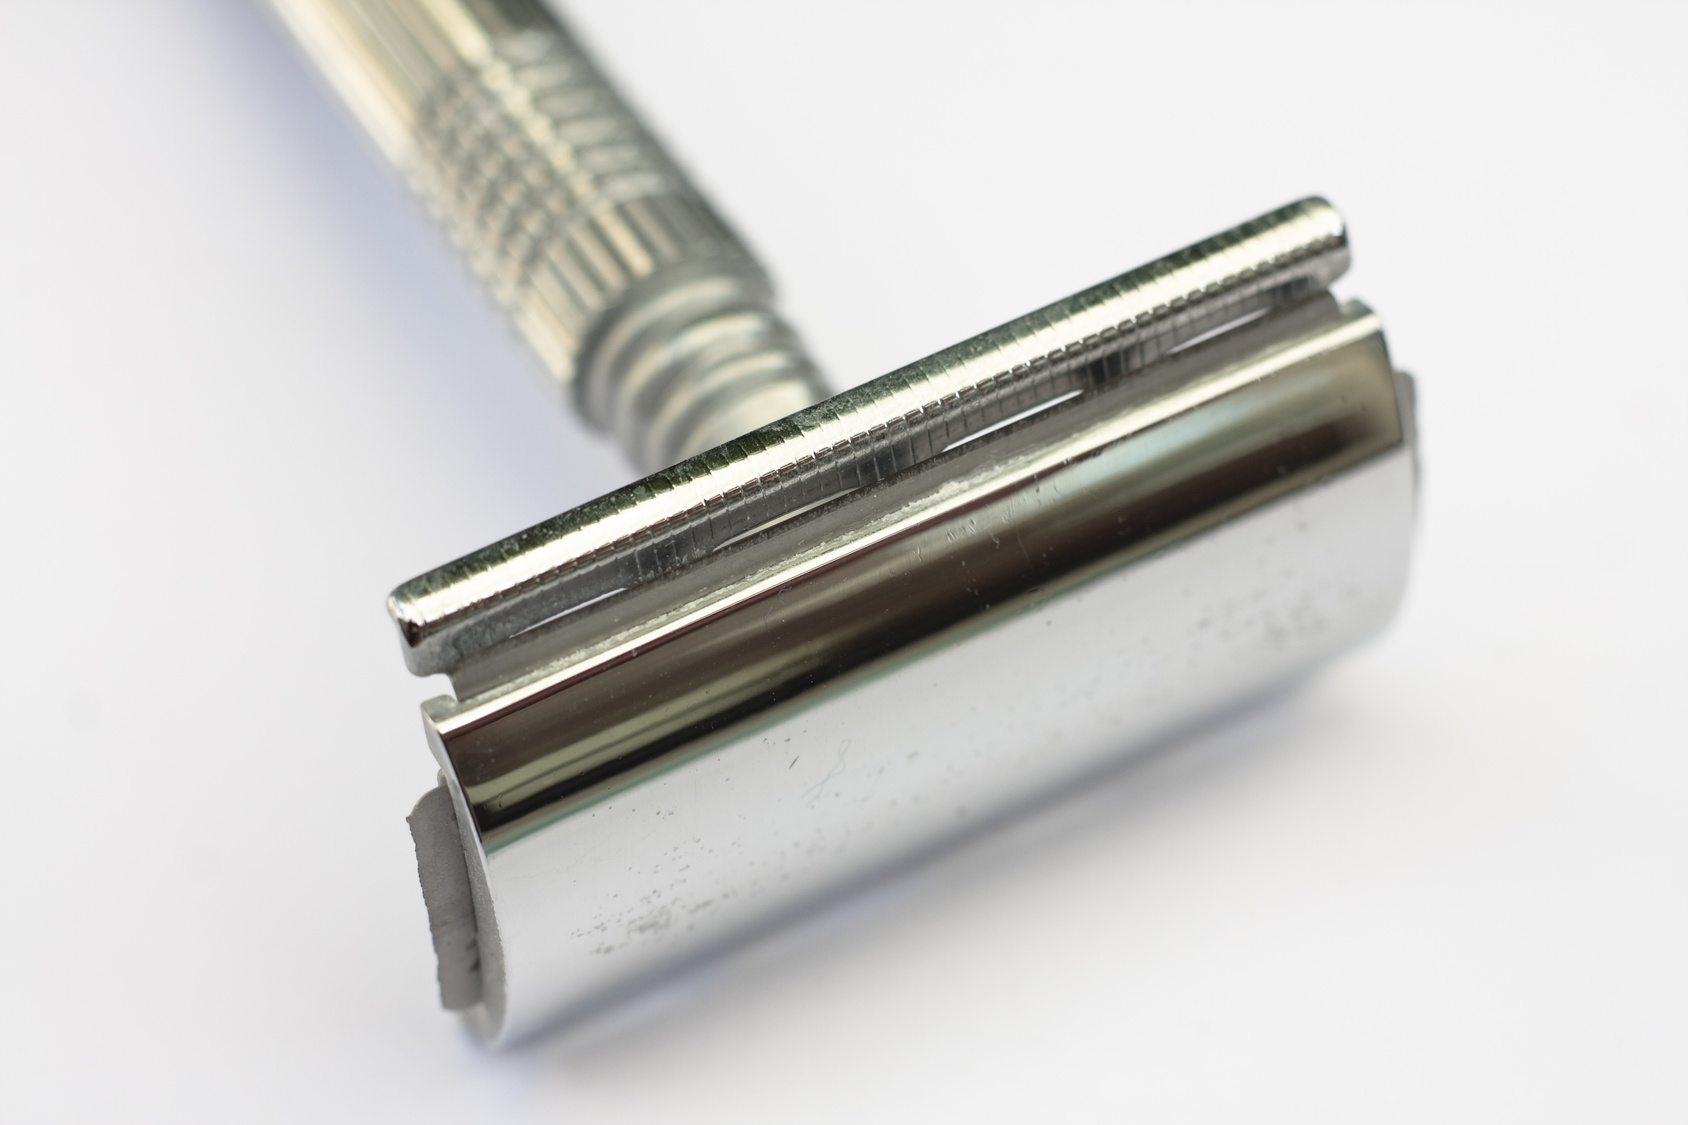 Double-Edge Safety Razors and You Are They Right for Your Routine